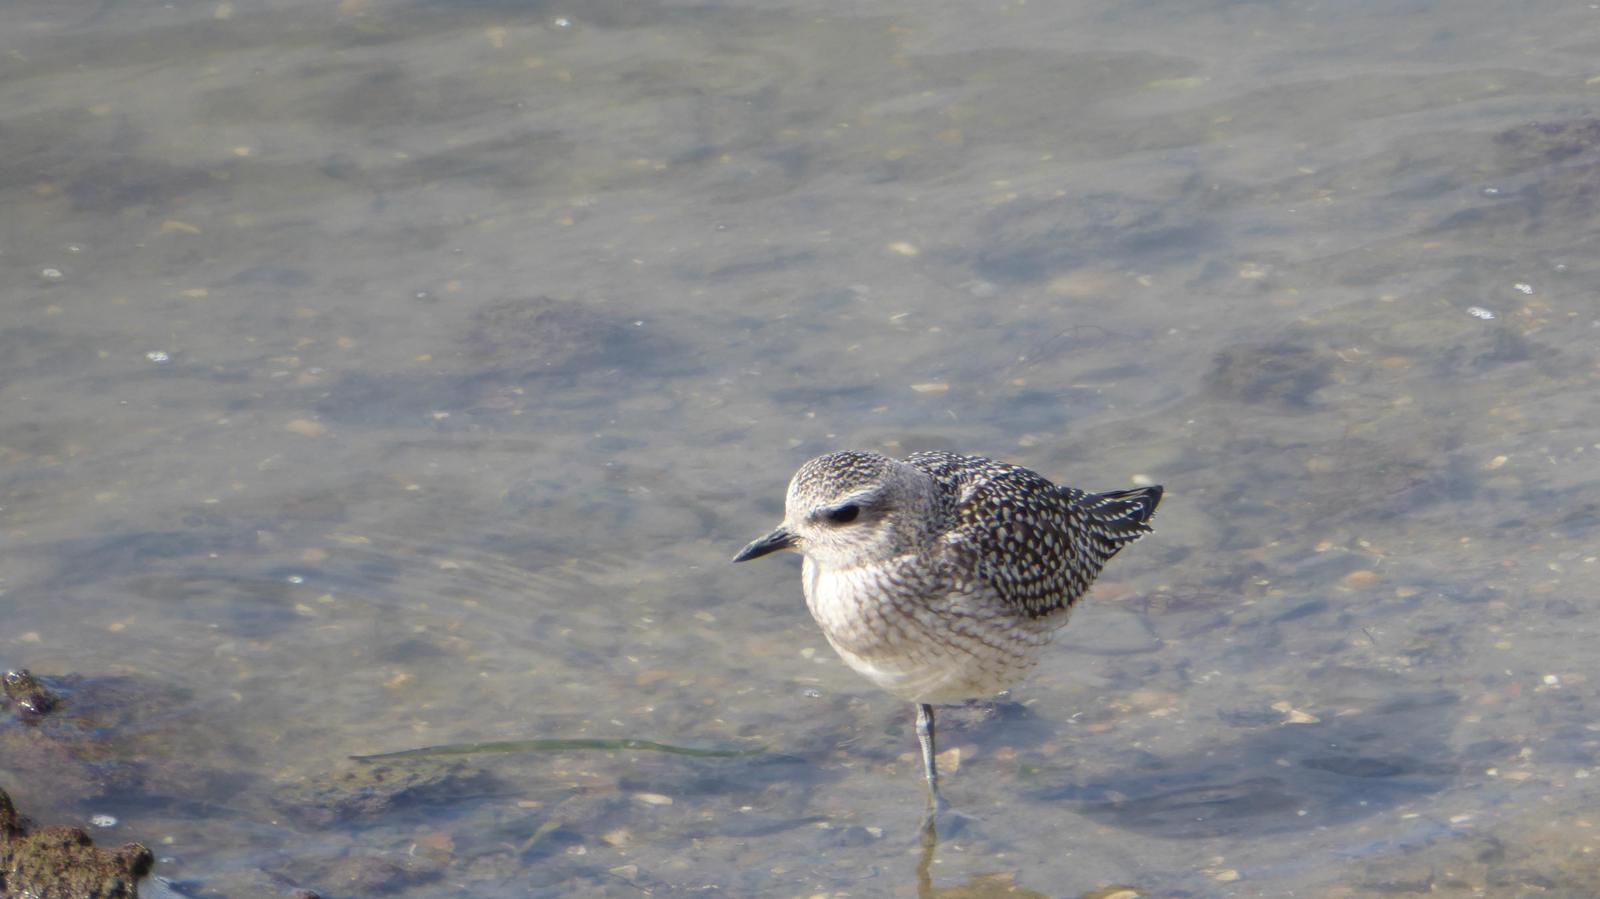 Black-bellied Plover Photo by Daliel Leite